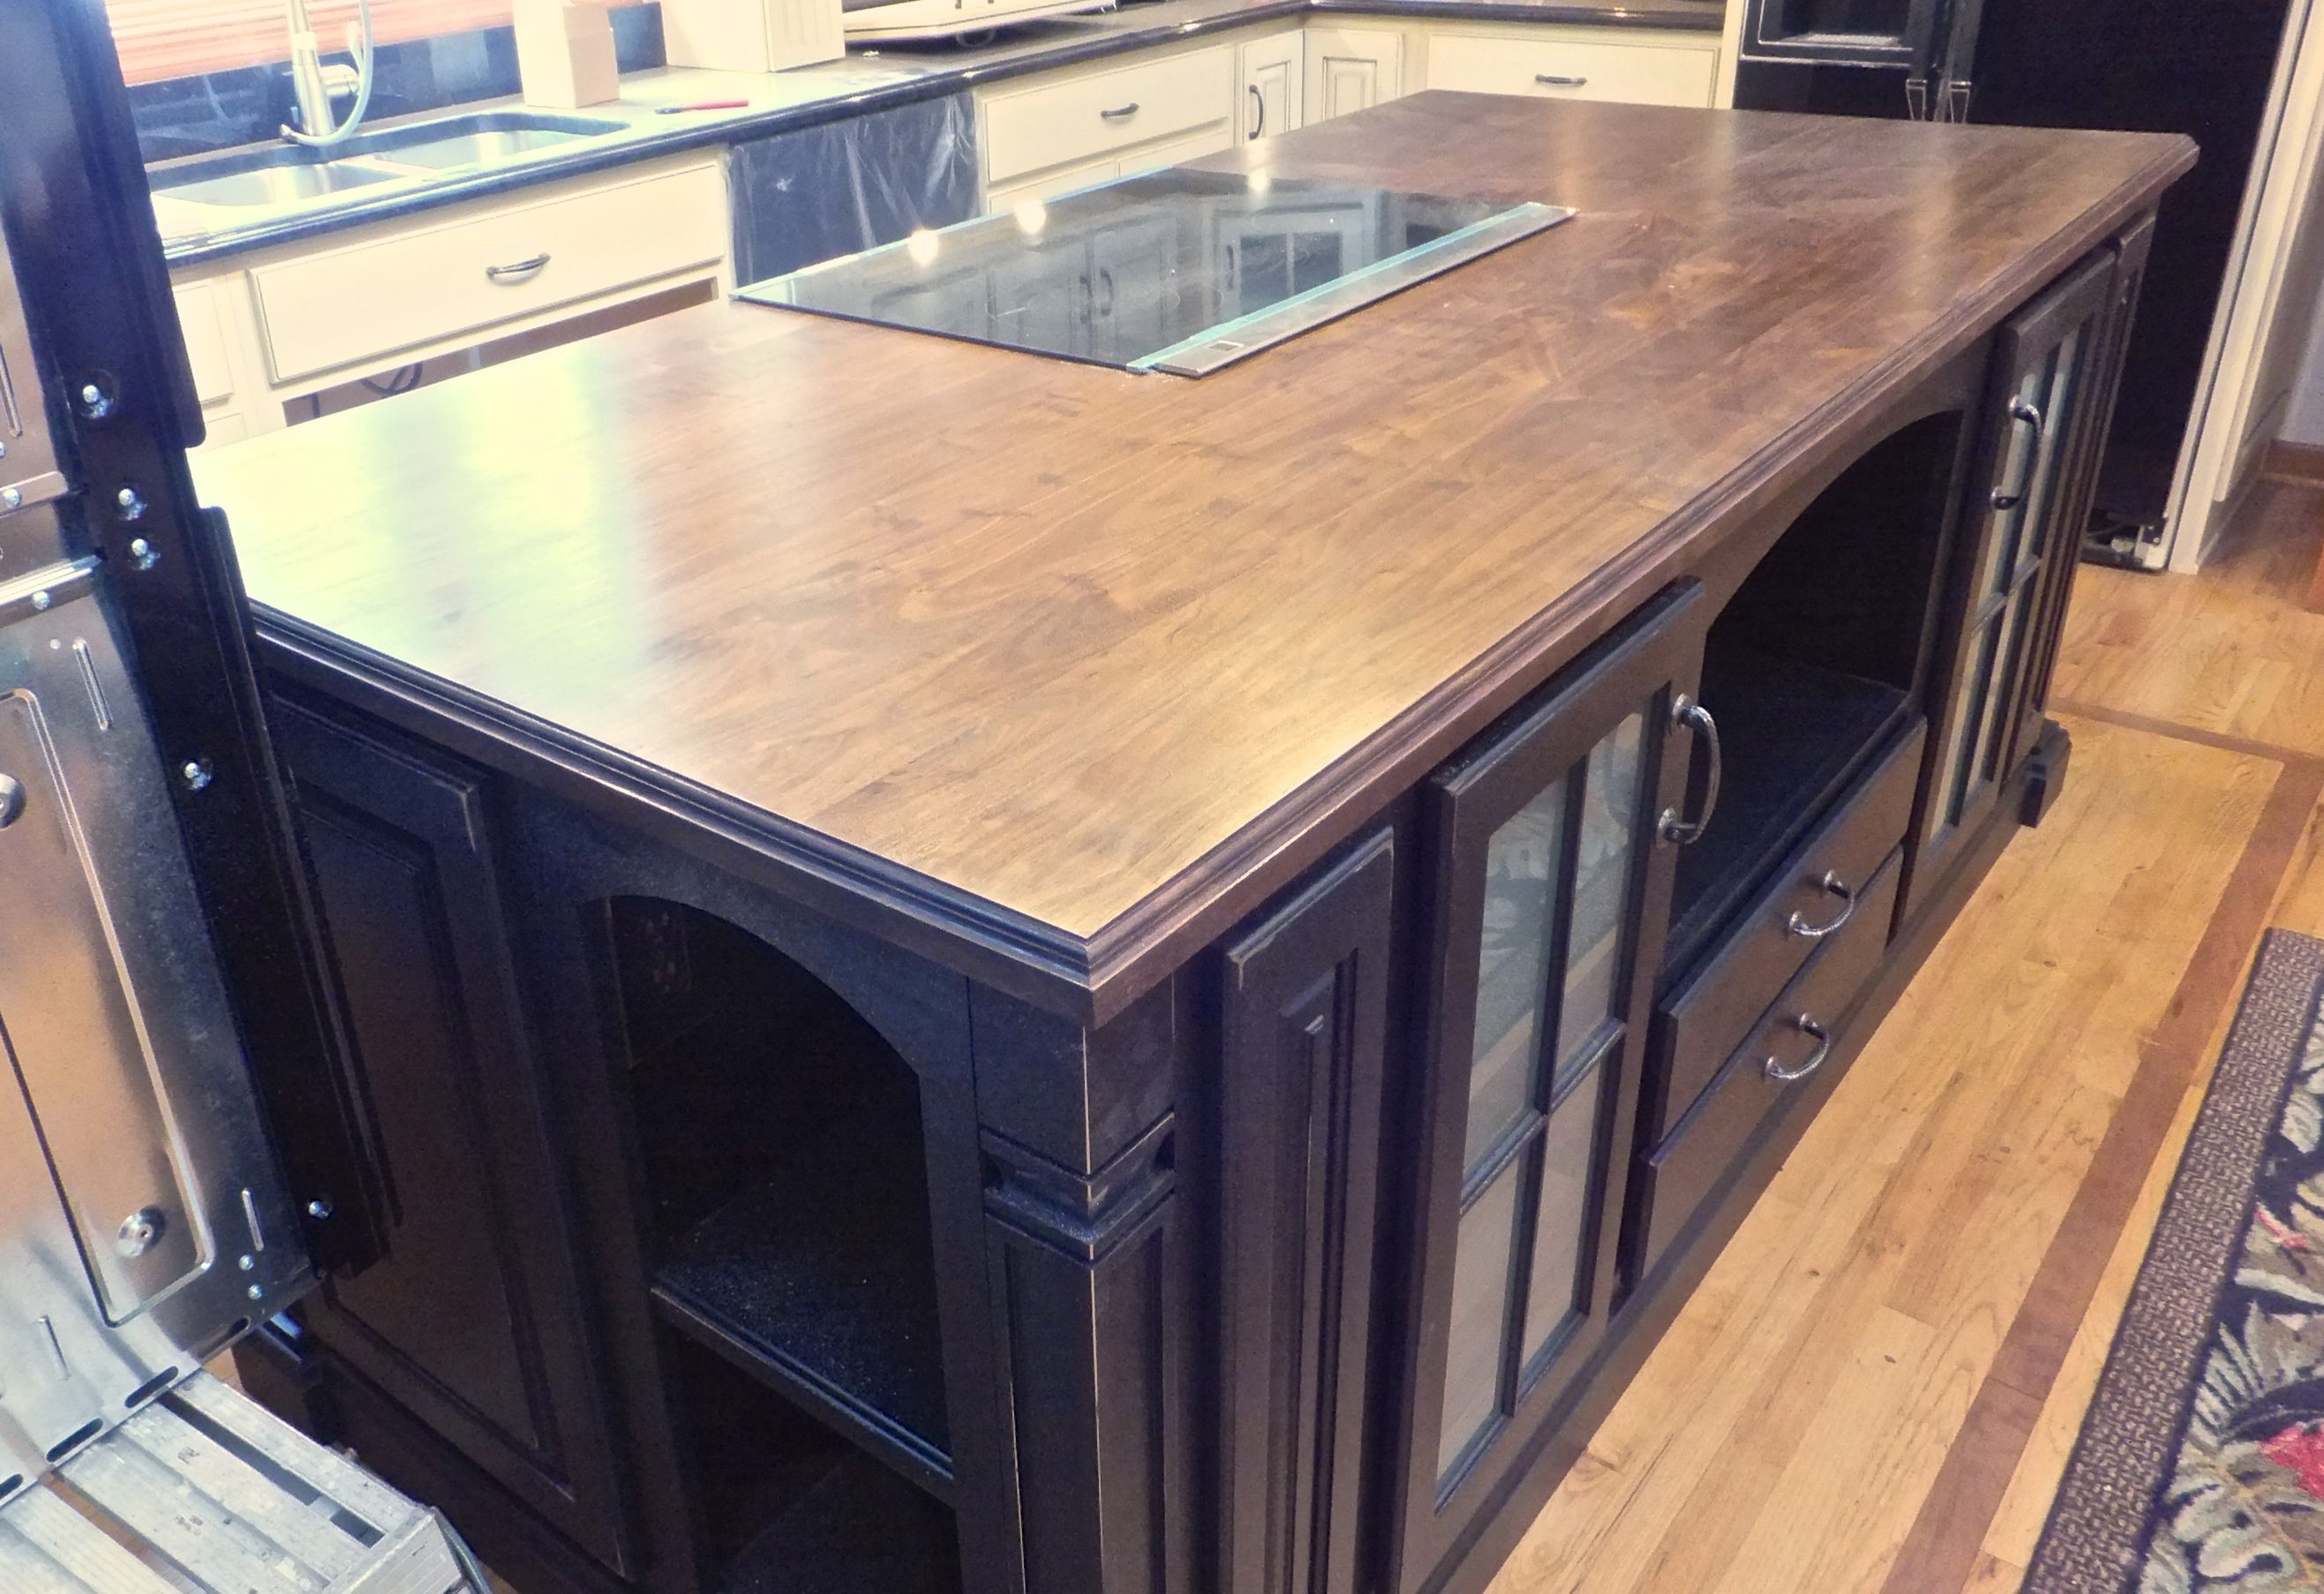 How To Make A Thick Countertop Out Of Thin Wood Diy Countertops